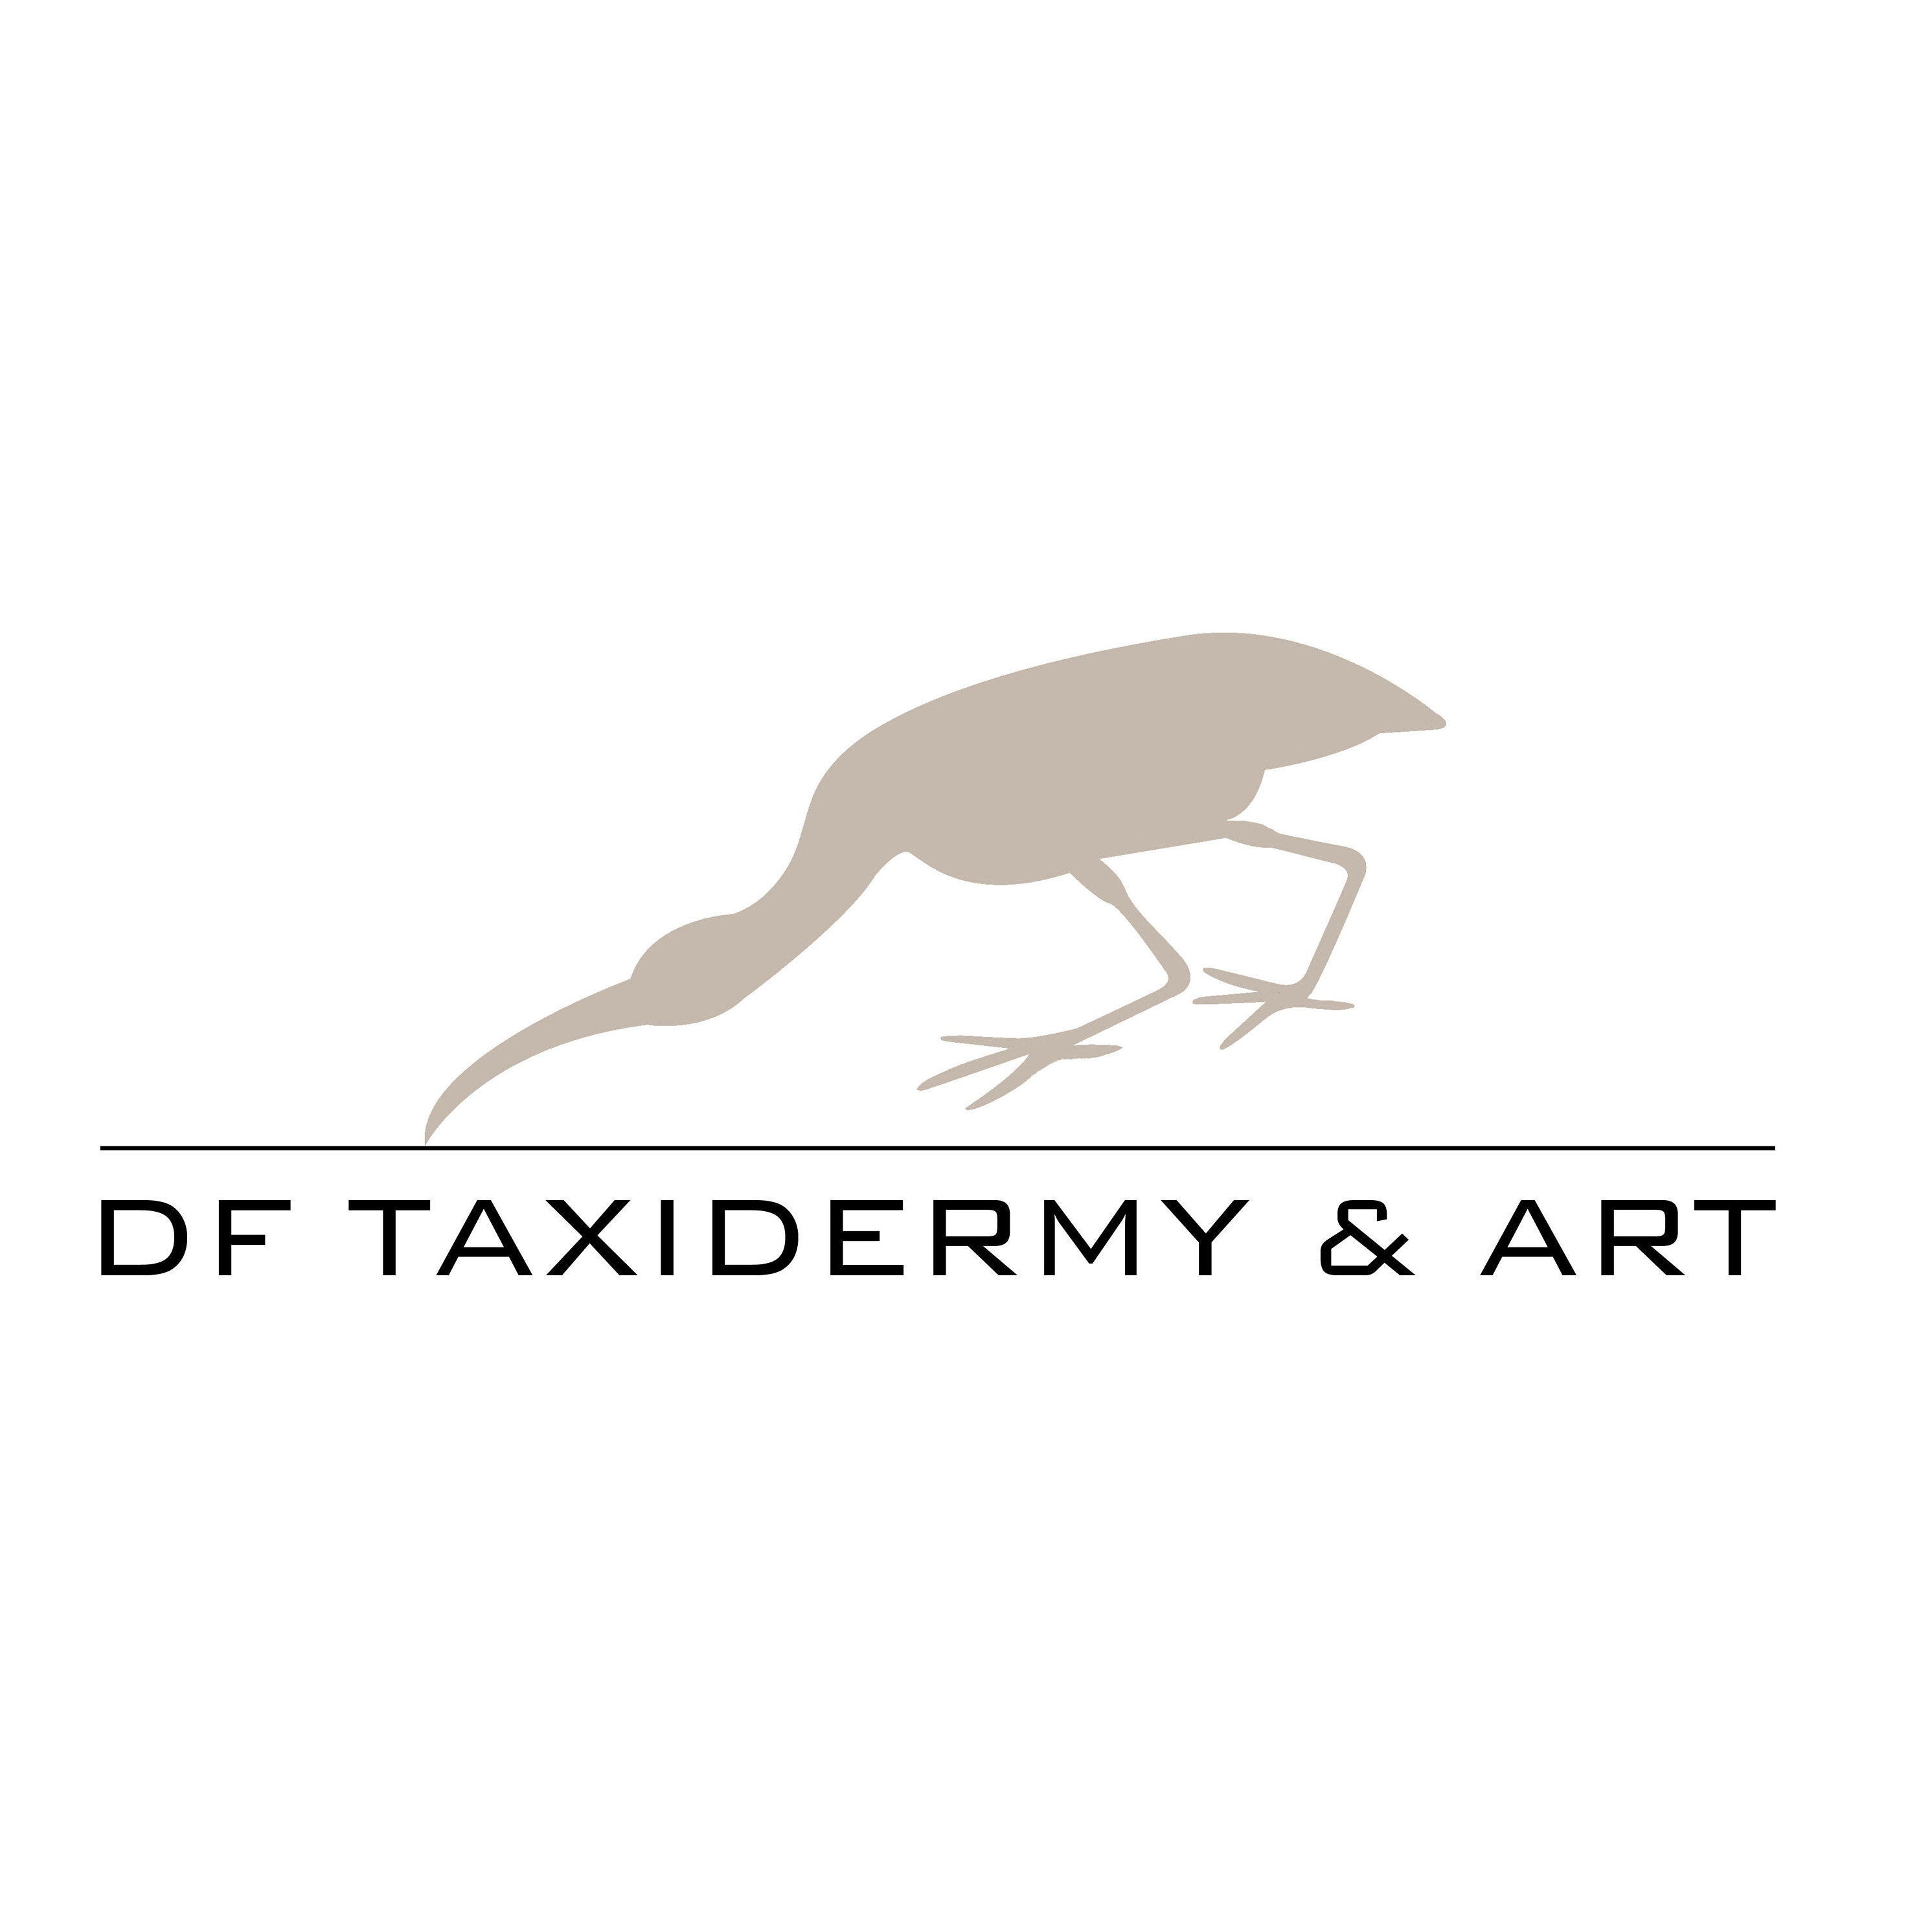 DF TAXIDERMY & ART Bird taxidermy art & by DanielleFrenken